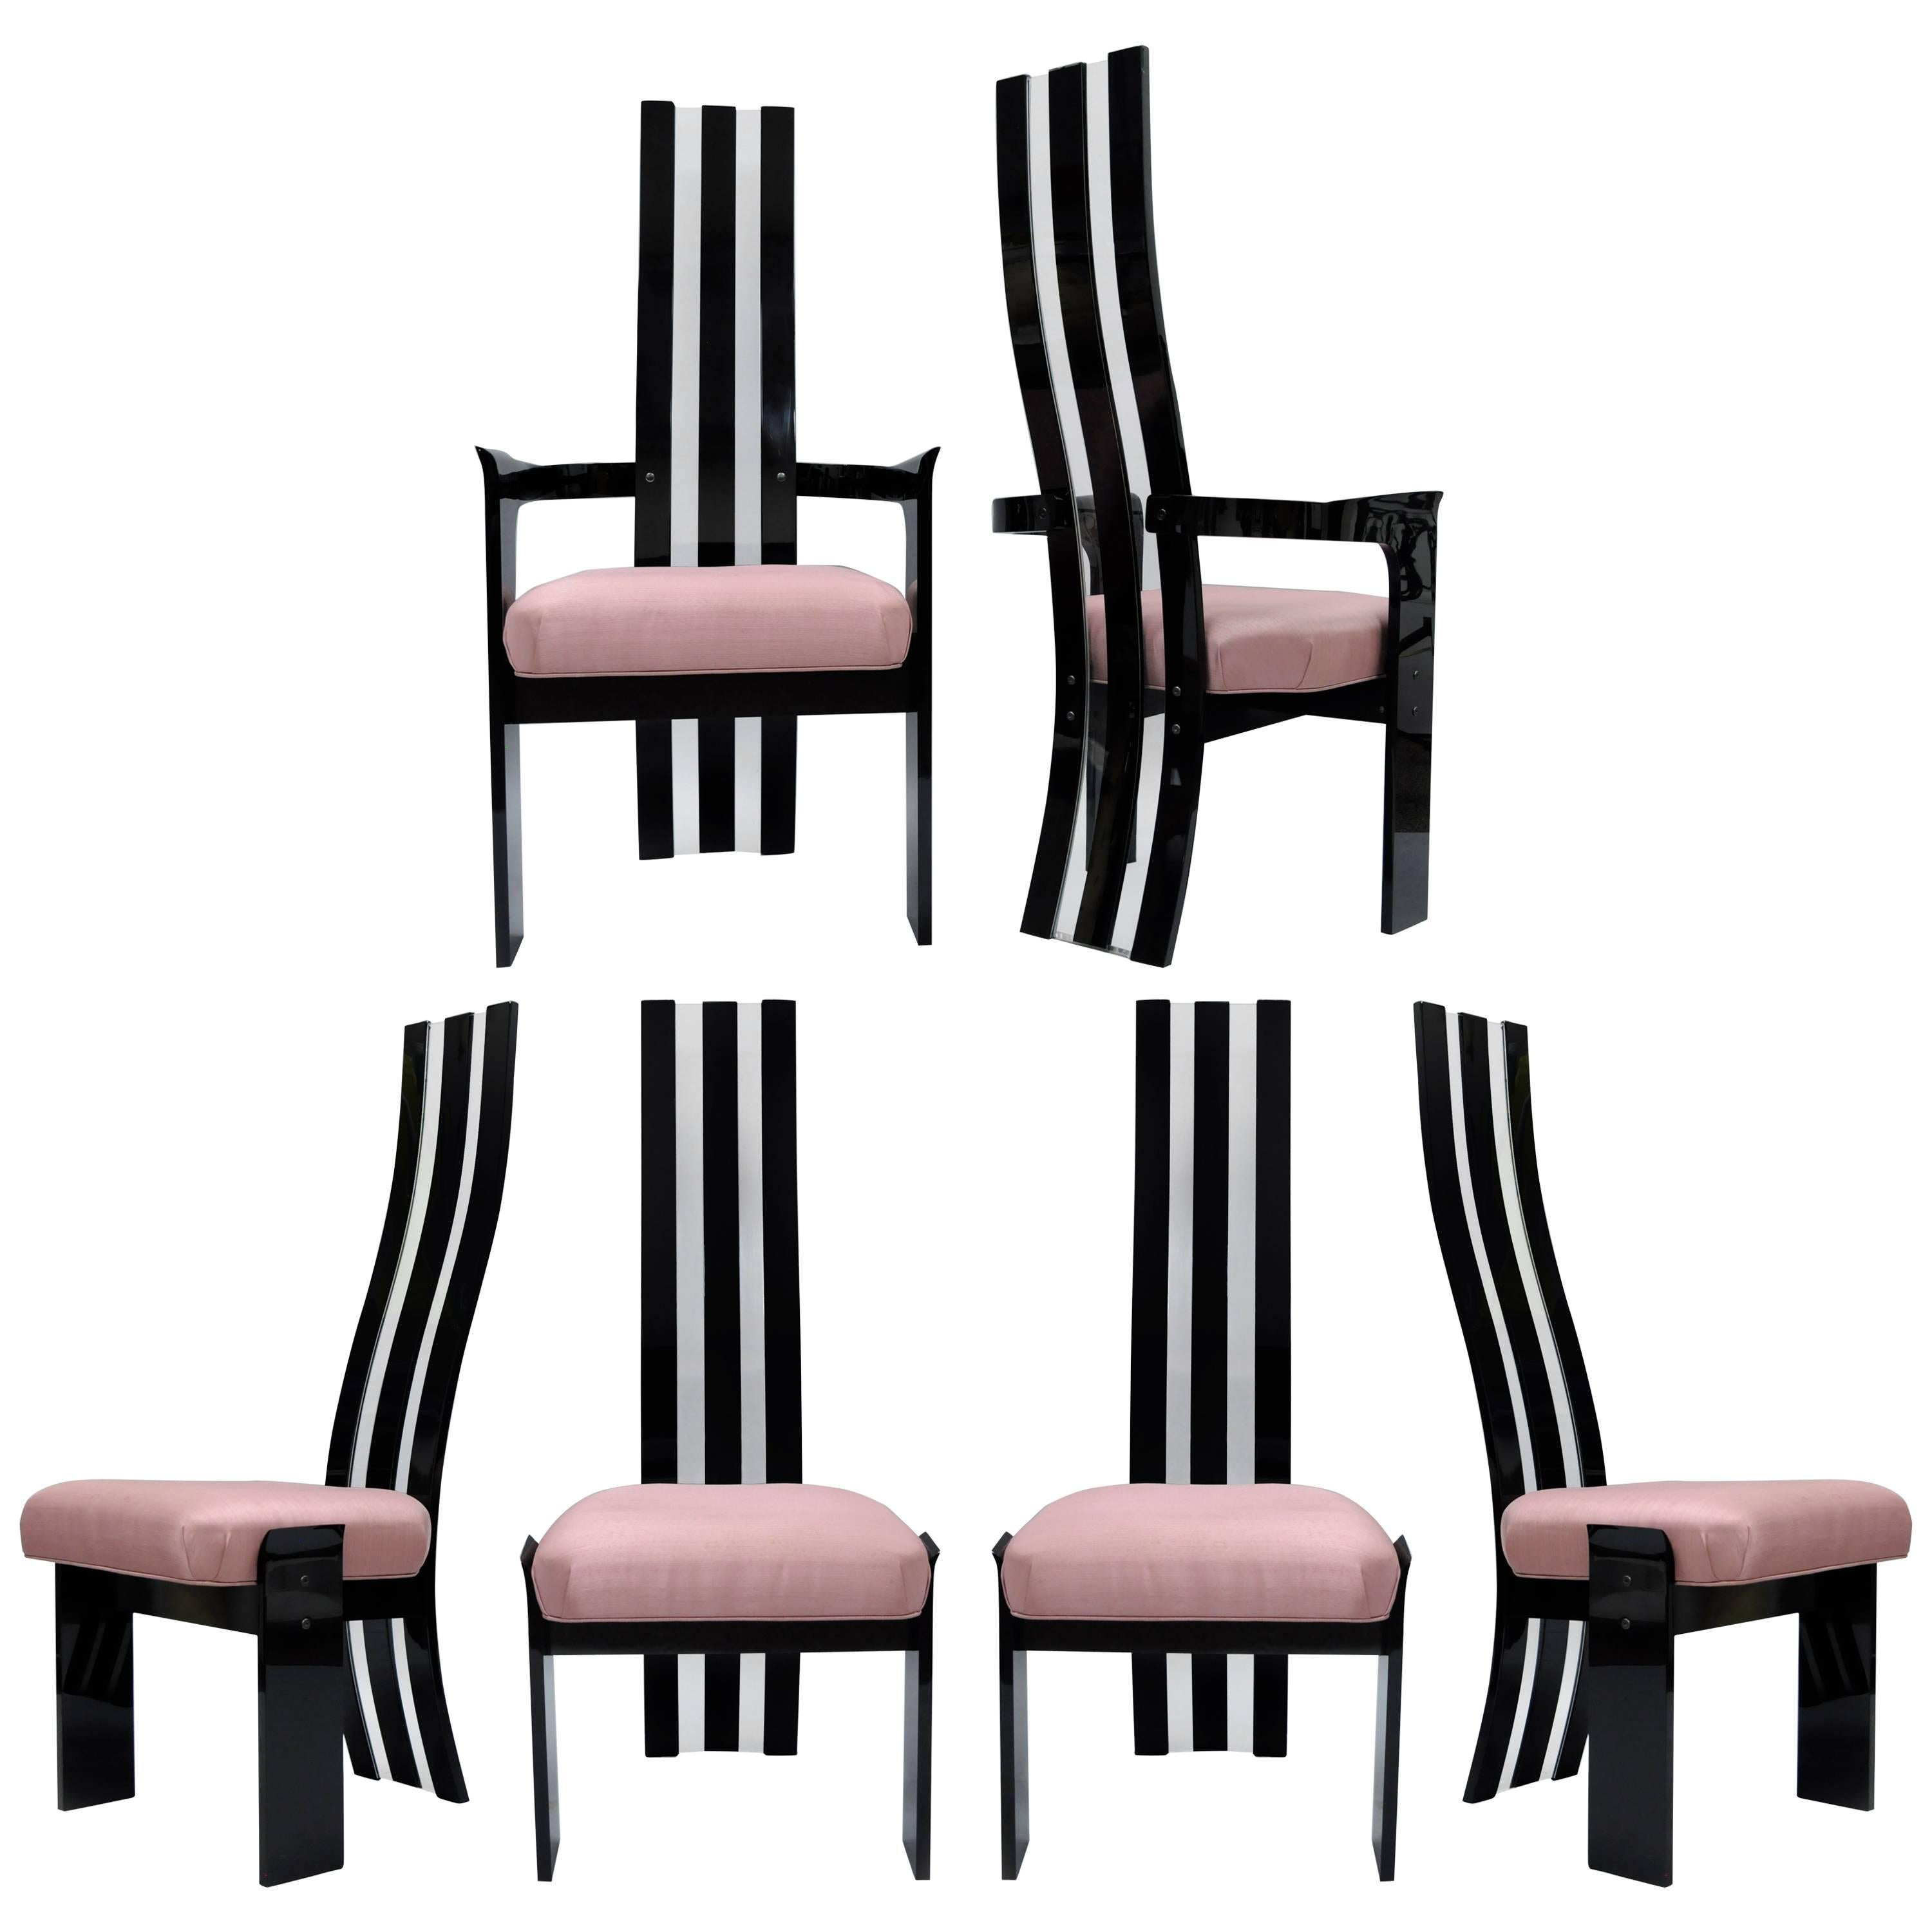 Set of 6 Hill Mfg Mid Century Modern Black Clear Lucite Sculptural Dining Chairs